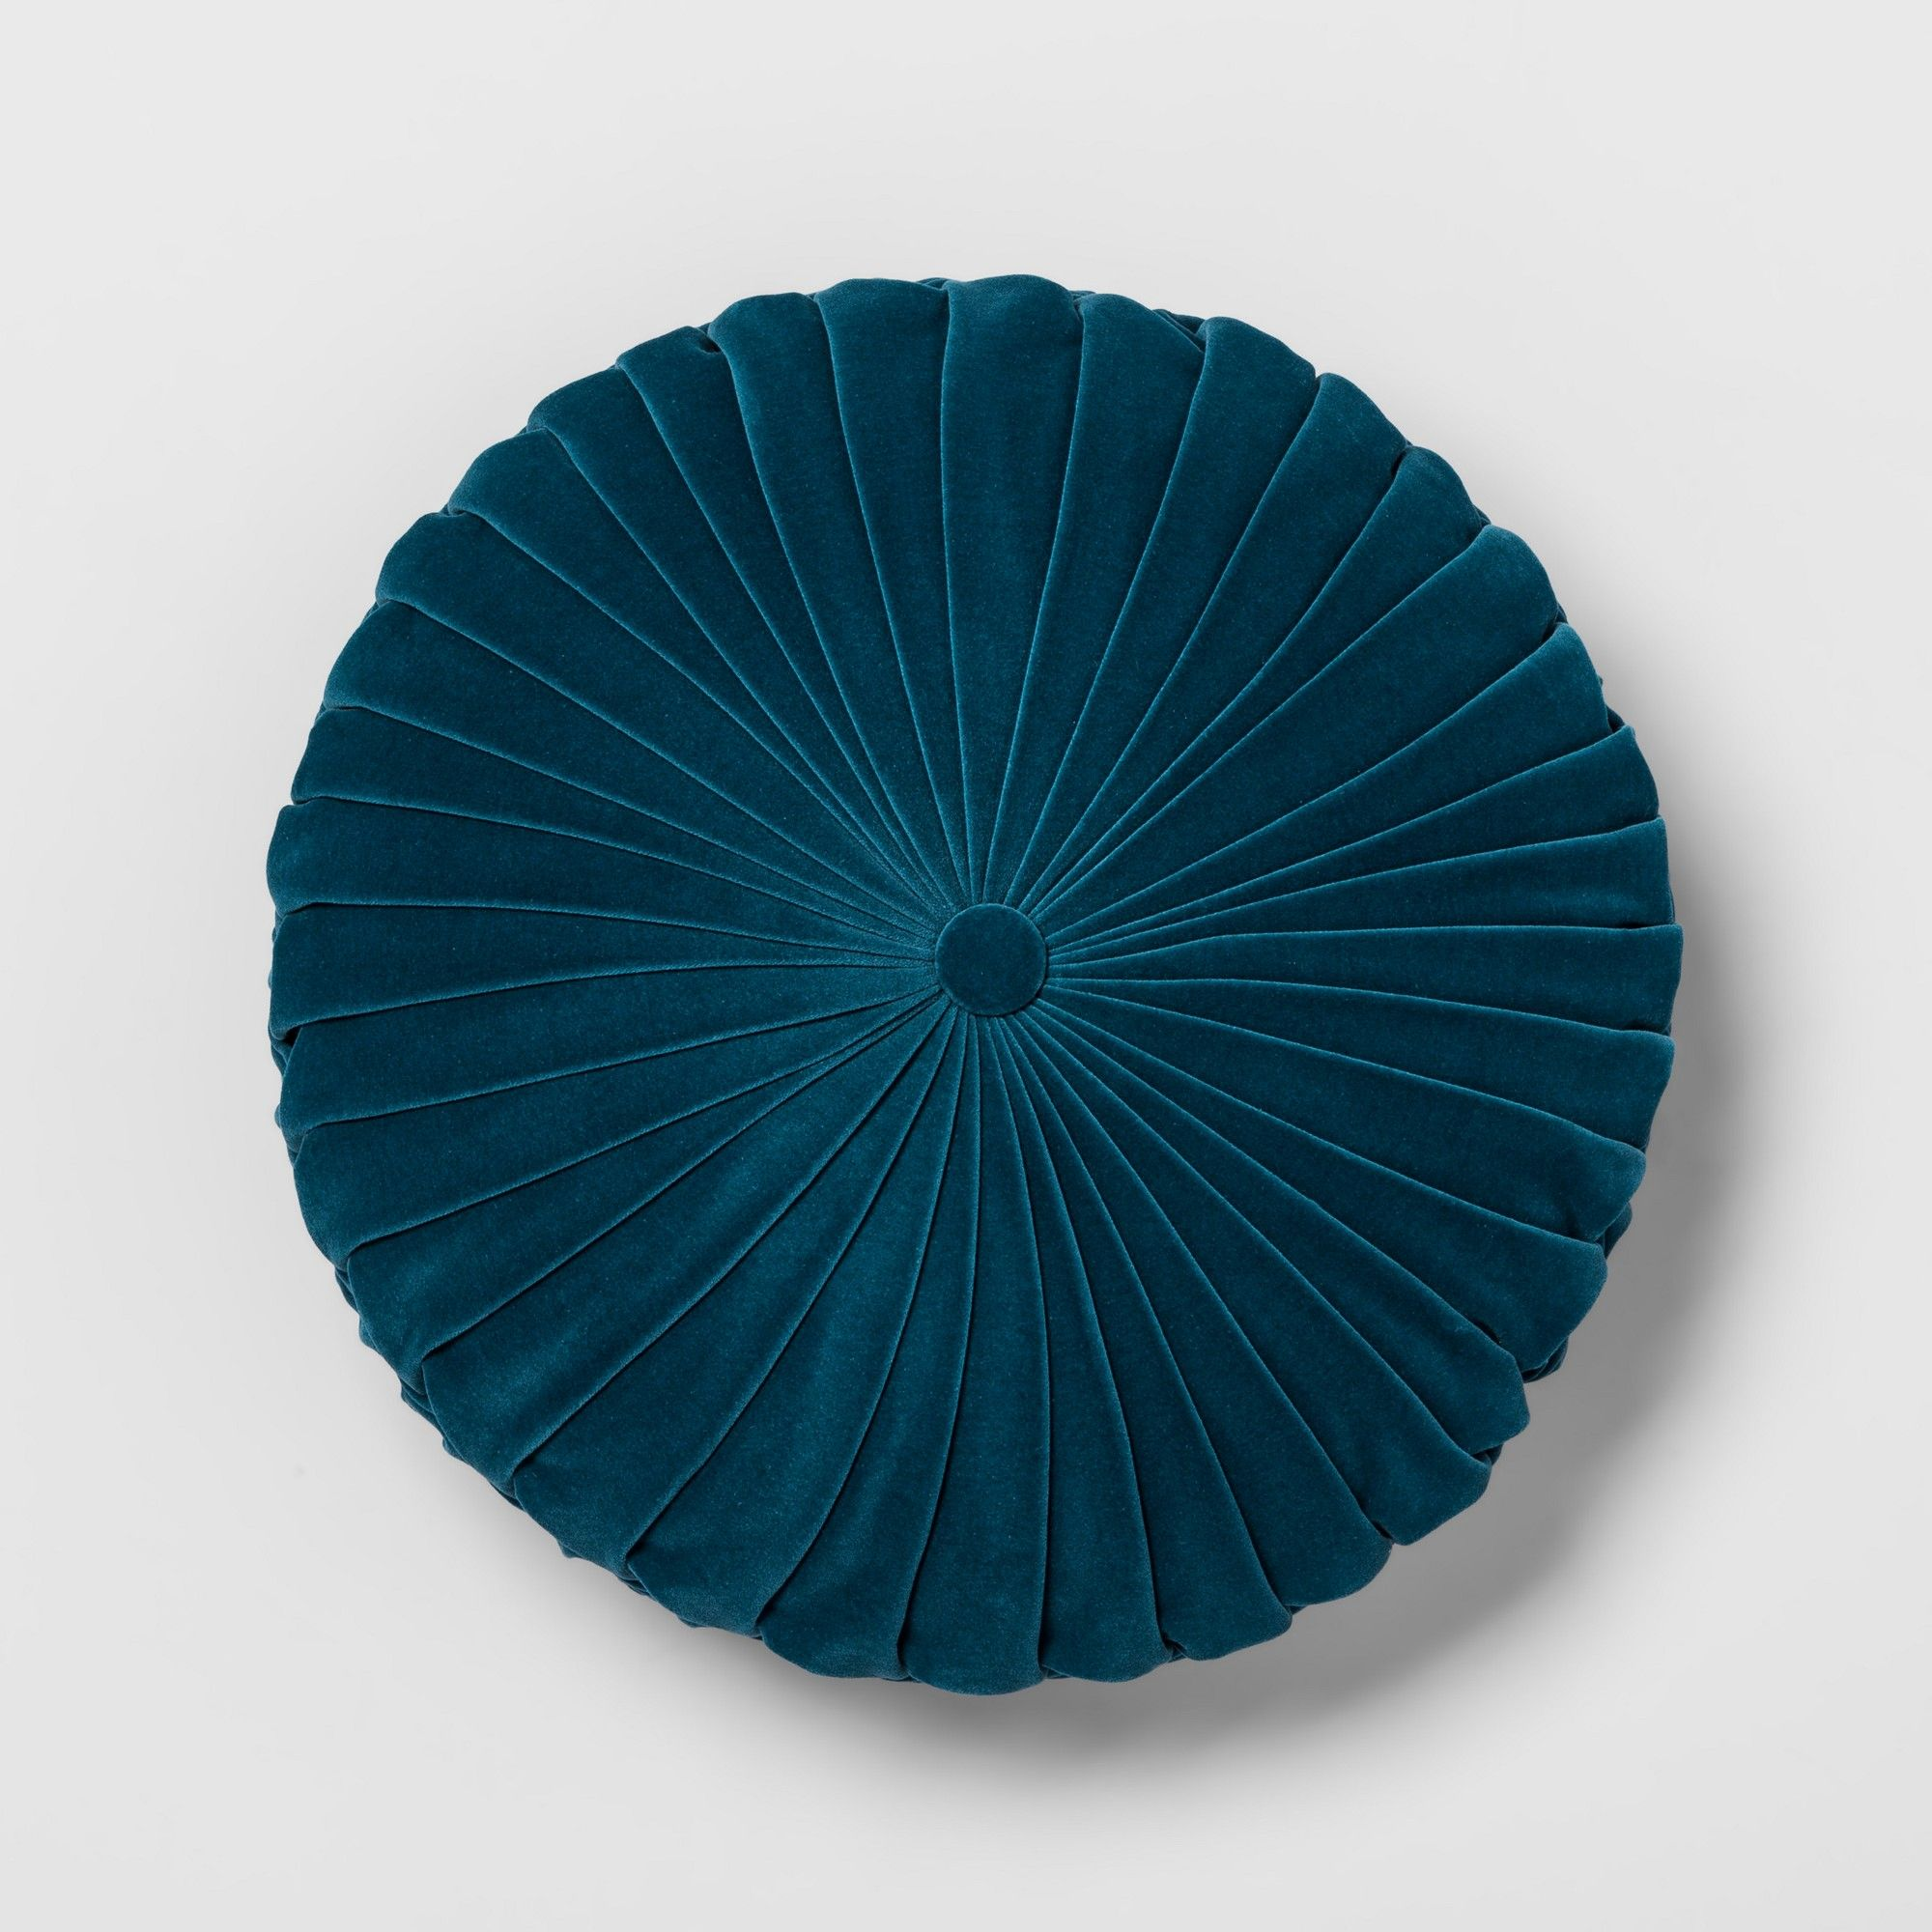 Fabulous Teal Pleated Velvet Round Throw Pillow Opalhouse Blue In Gamerscity Chair Design For Home Gamerscityorg